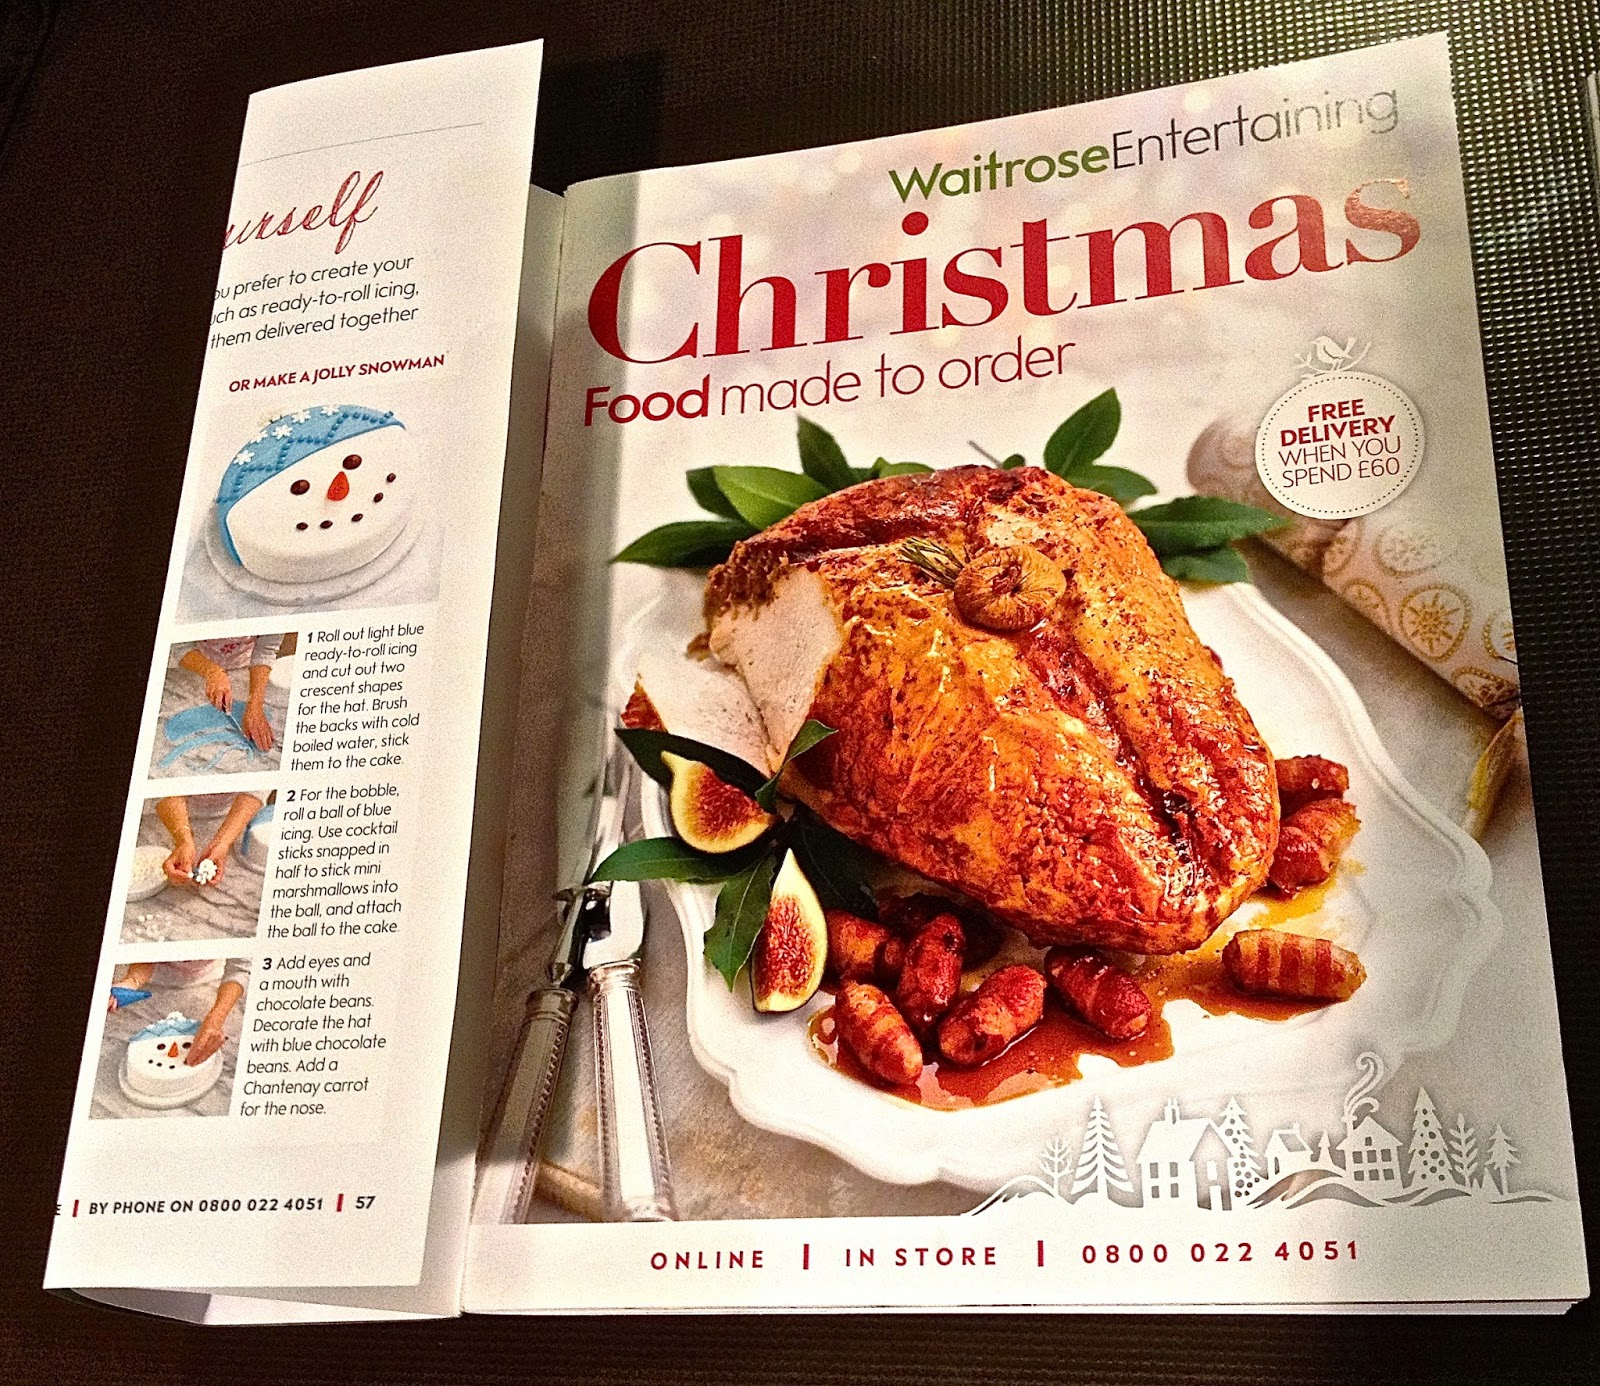 Travel With Angela Lansbury Buy Or Diy Xmas Party Food And